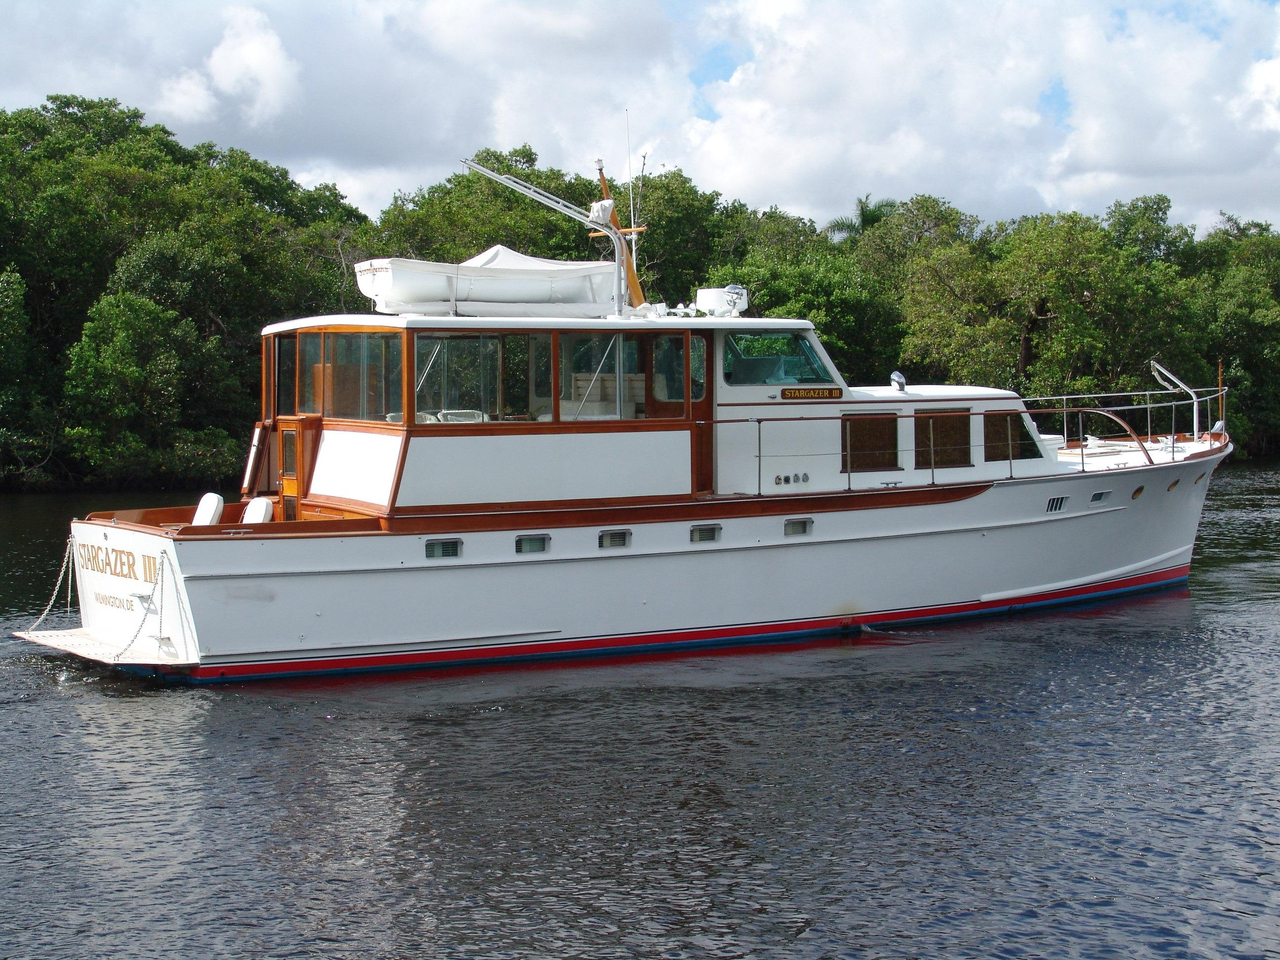 1956 used trumpy motor yacht for sale 119 500 palm for Used motor yachts for sale in florida